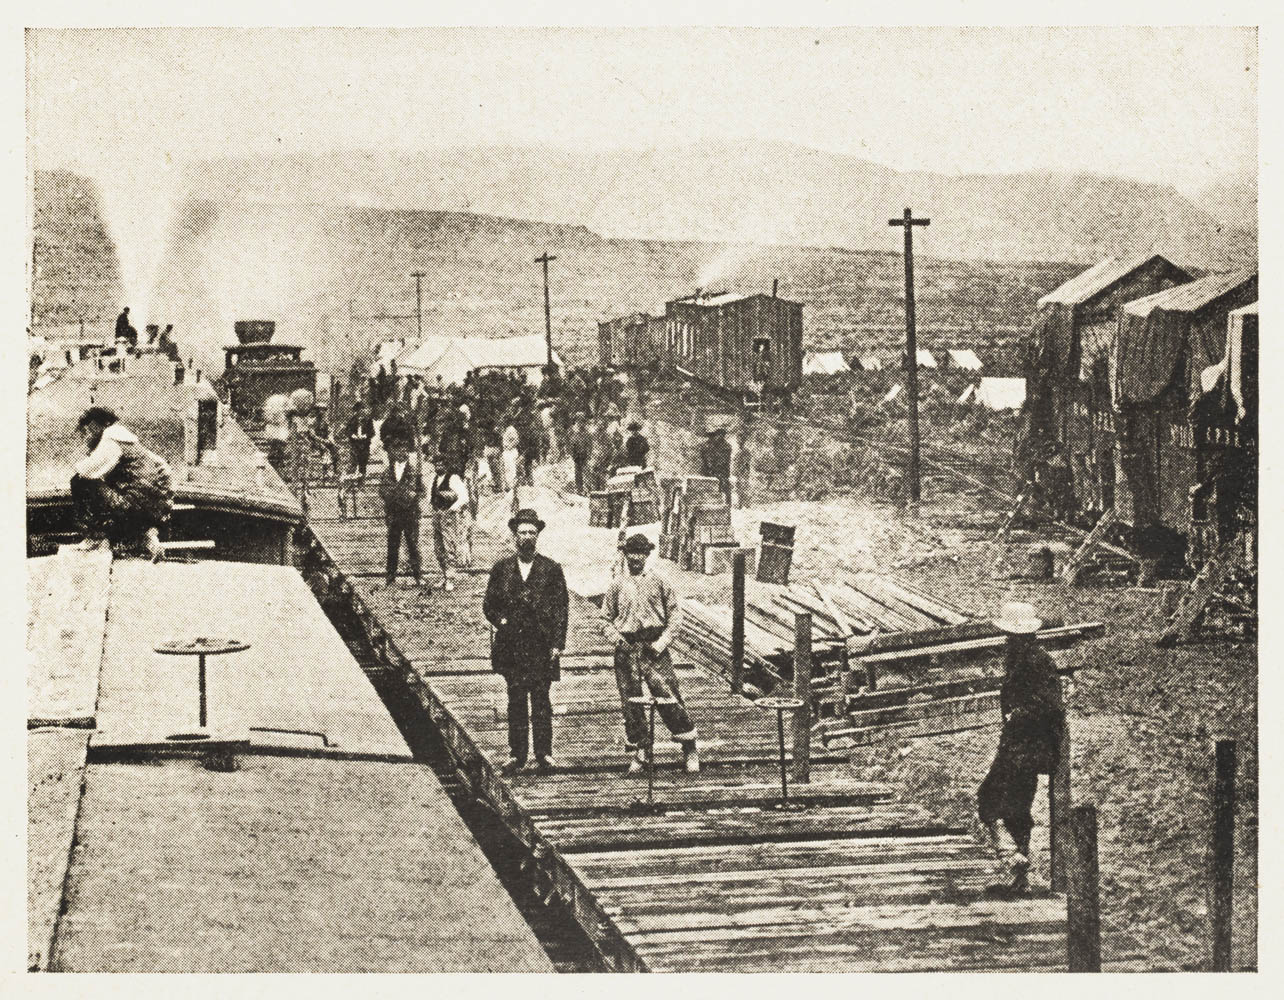 Cultural Impact - The Transcontinental Railroad